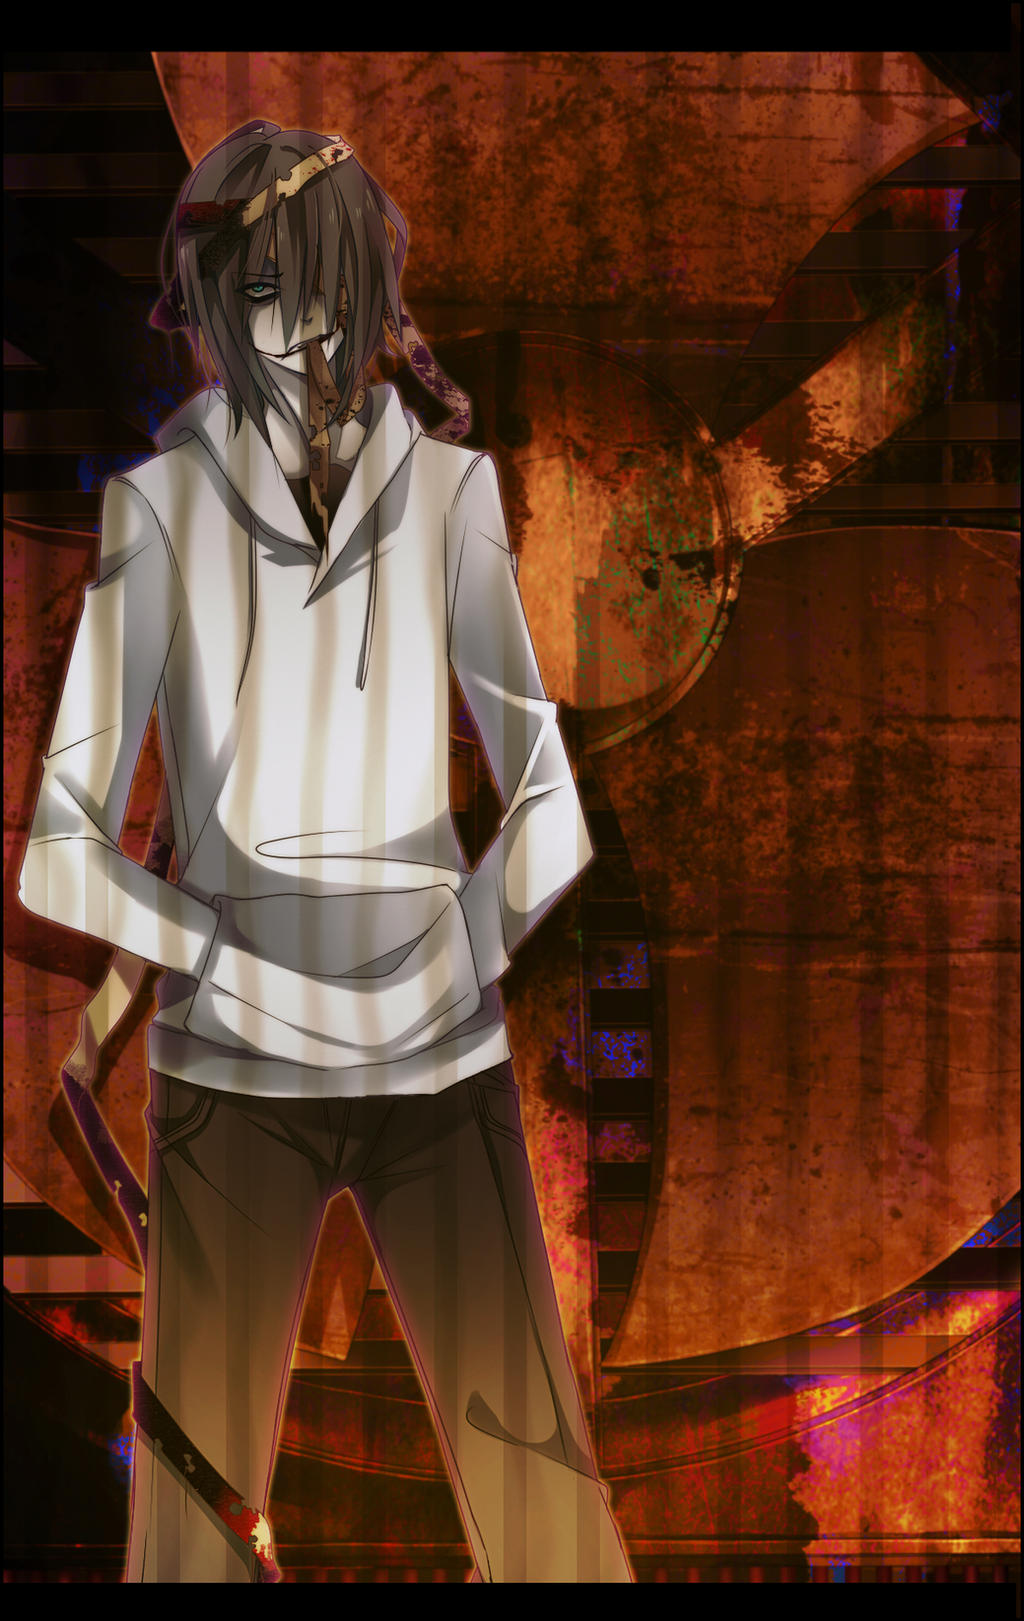 jeff the killer3 by gatanii69